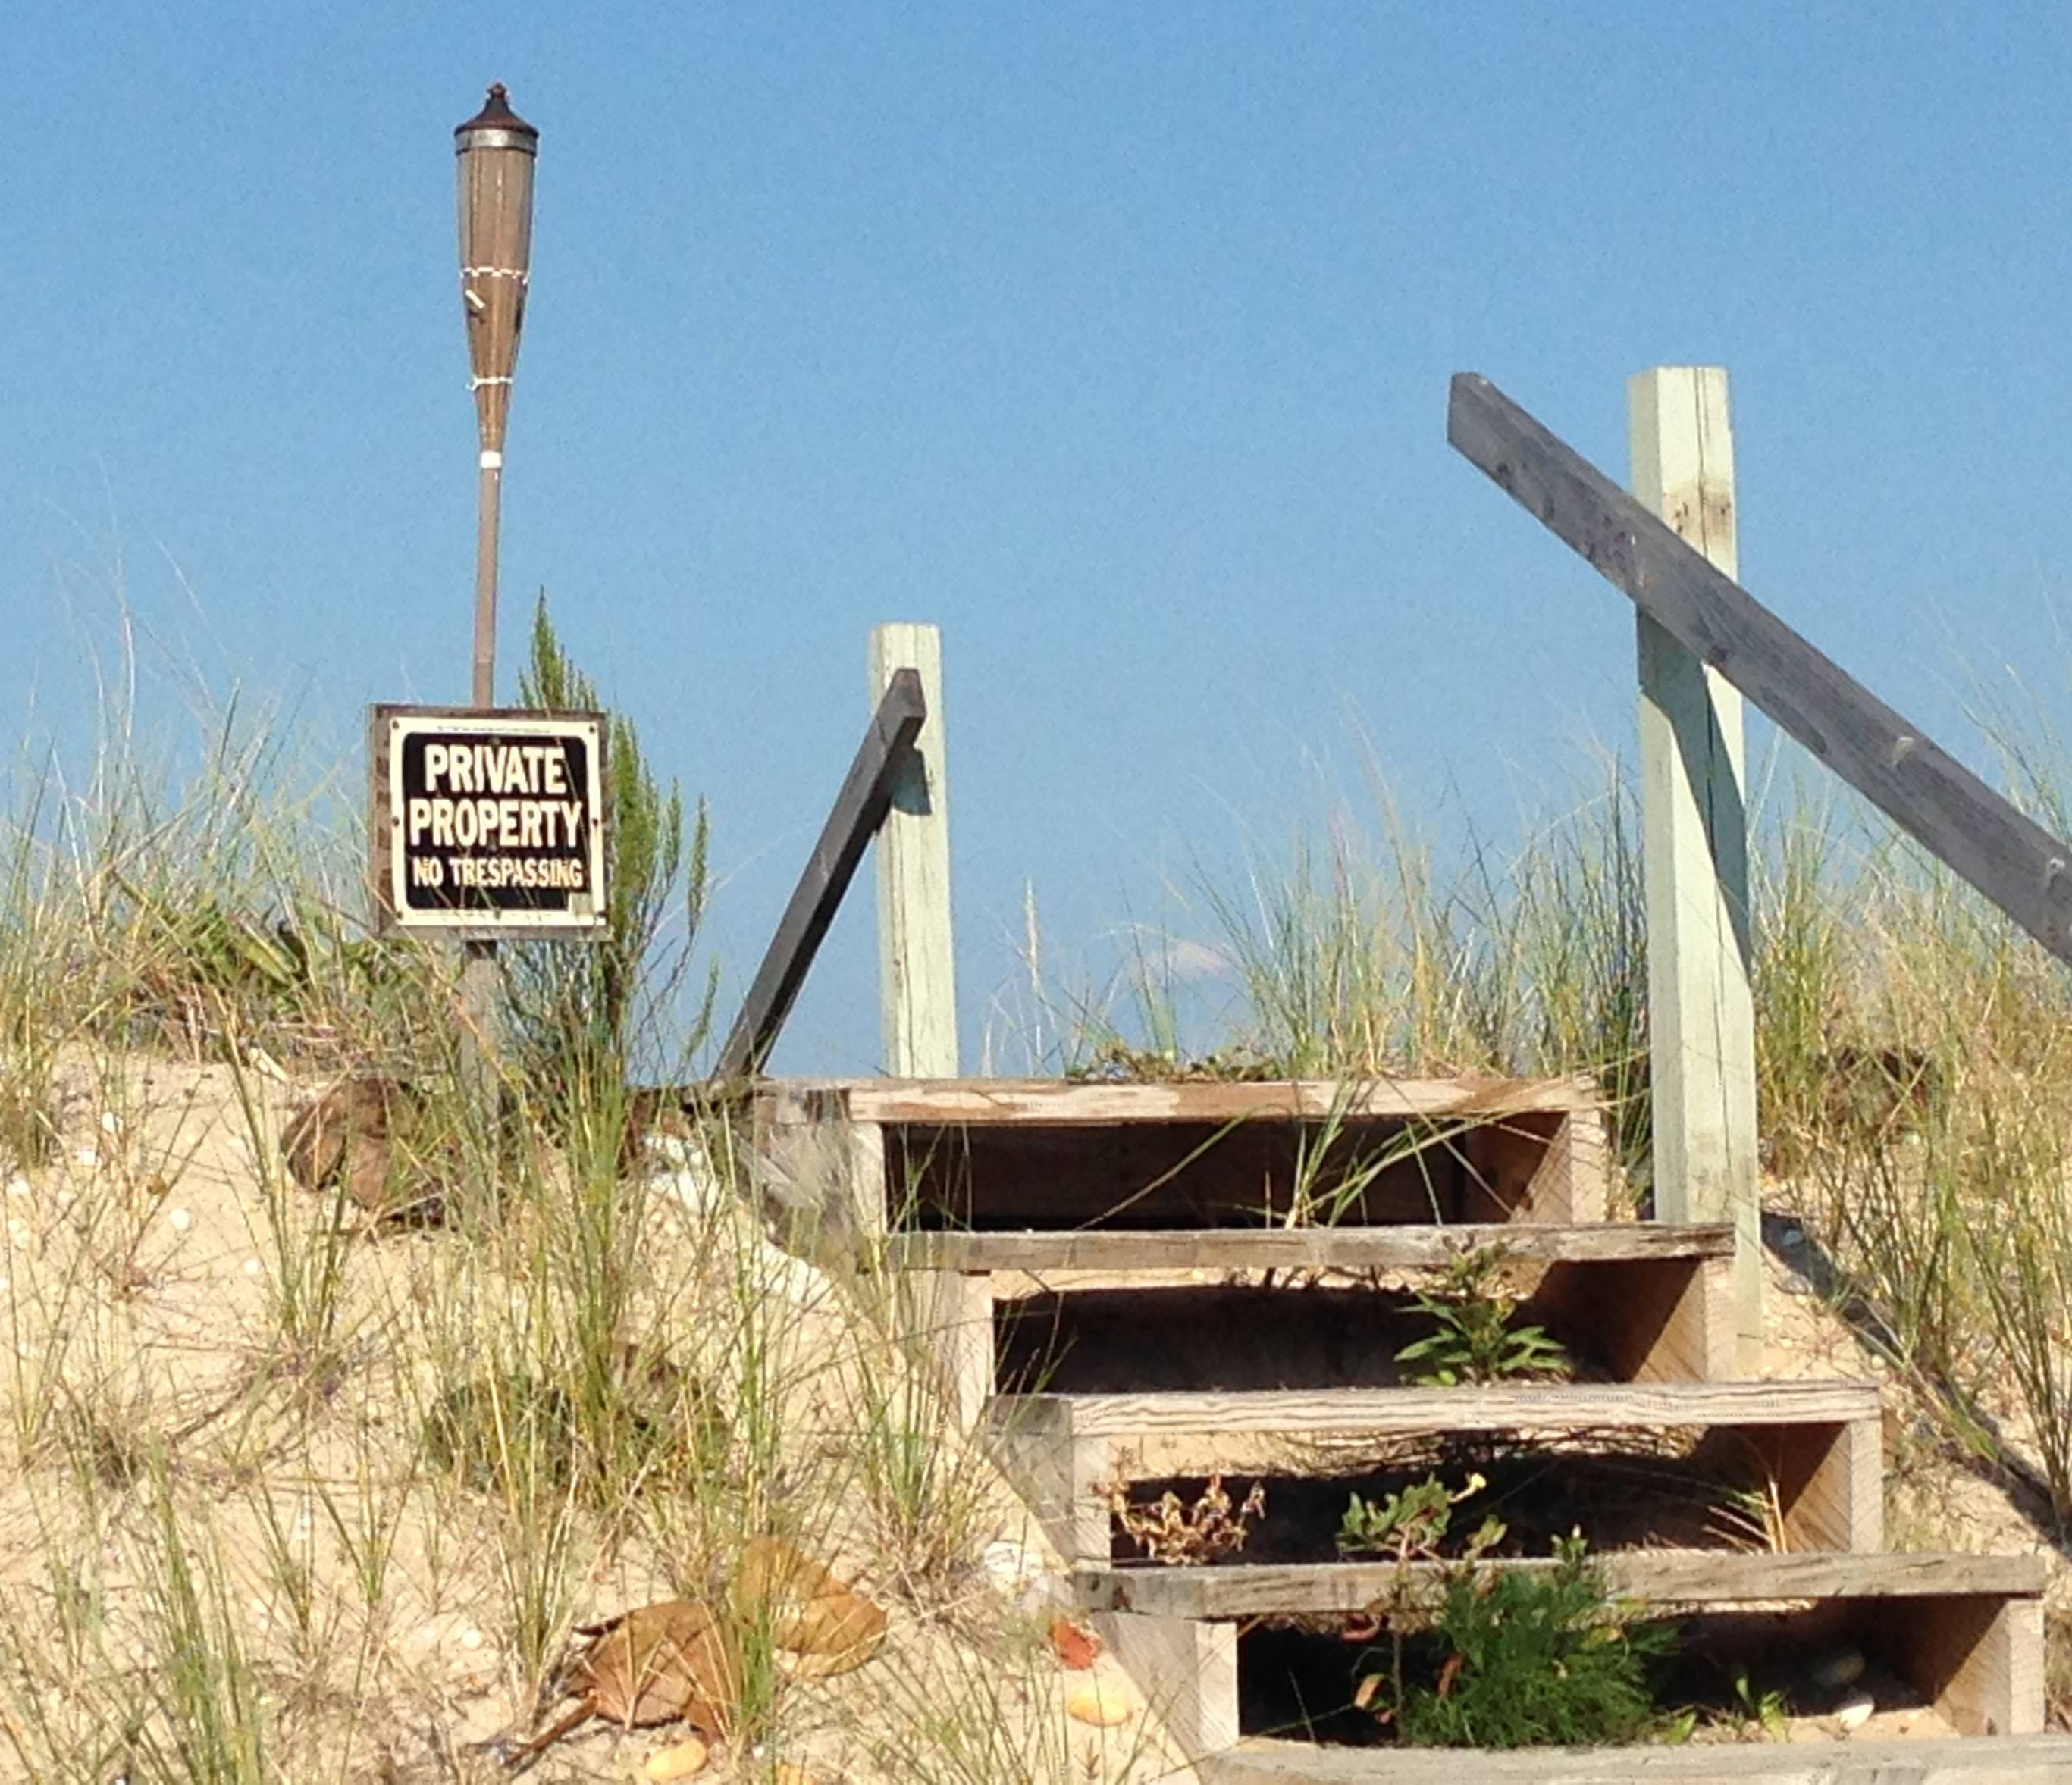 A private property sign in the village of Asharoken, N.Y., marks beachfront and stairs leading to the beach. Property owners without waterfront property in Asharoken can buy beach property for access to the water. Many owners have built boardwalks, walkways and other routes to the beach, which are often marked with private property signs.